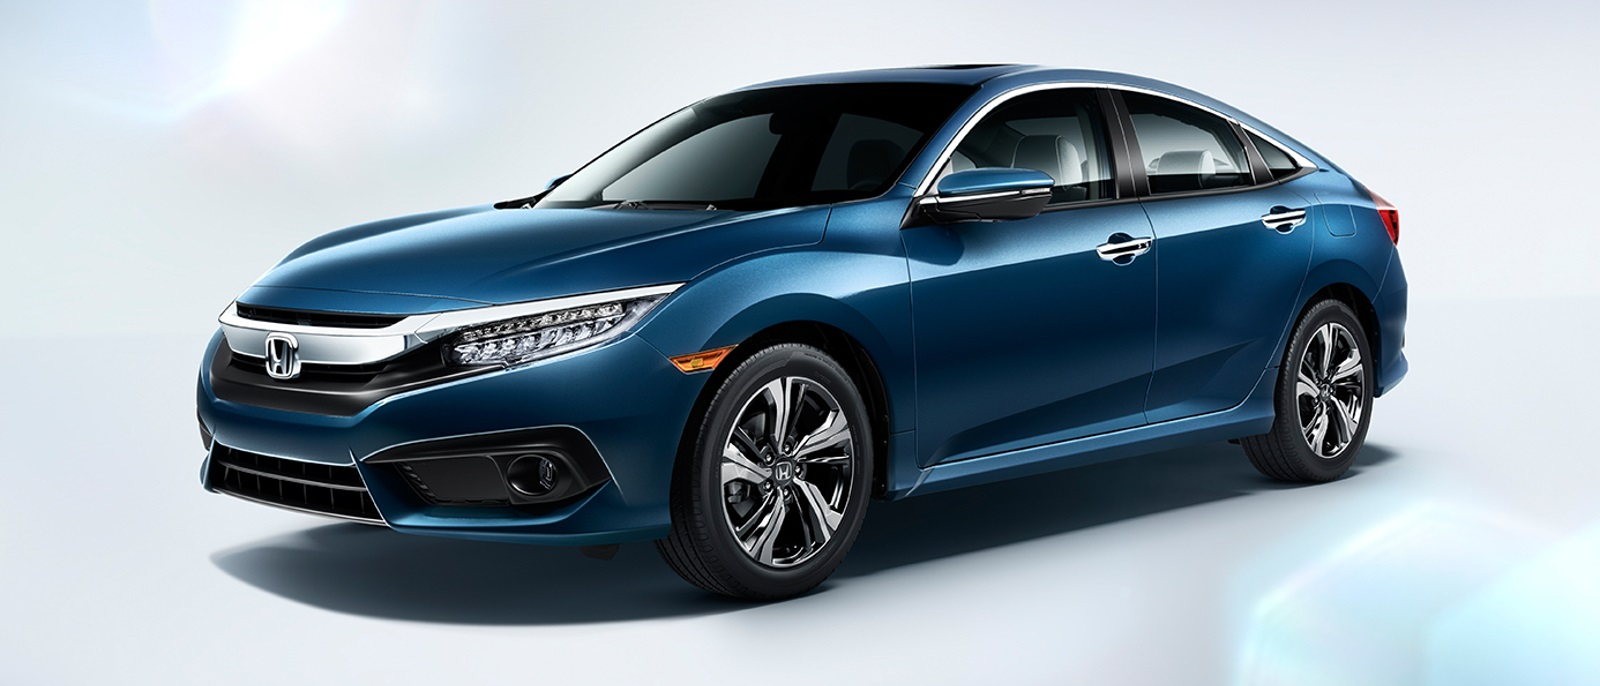 2016-honda-civic-tilted-side-view